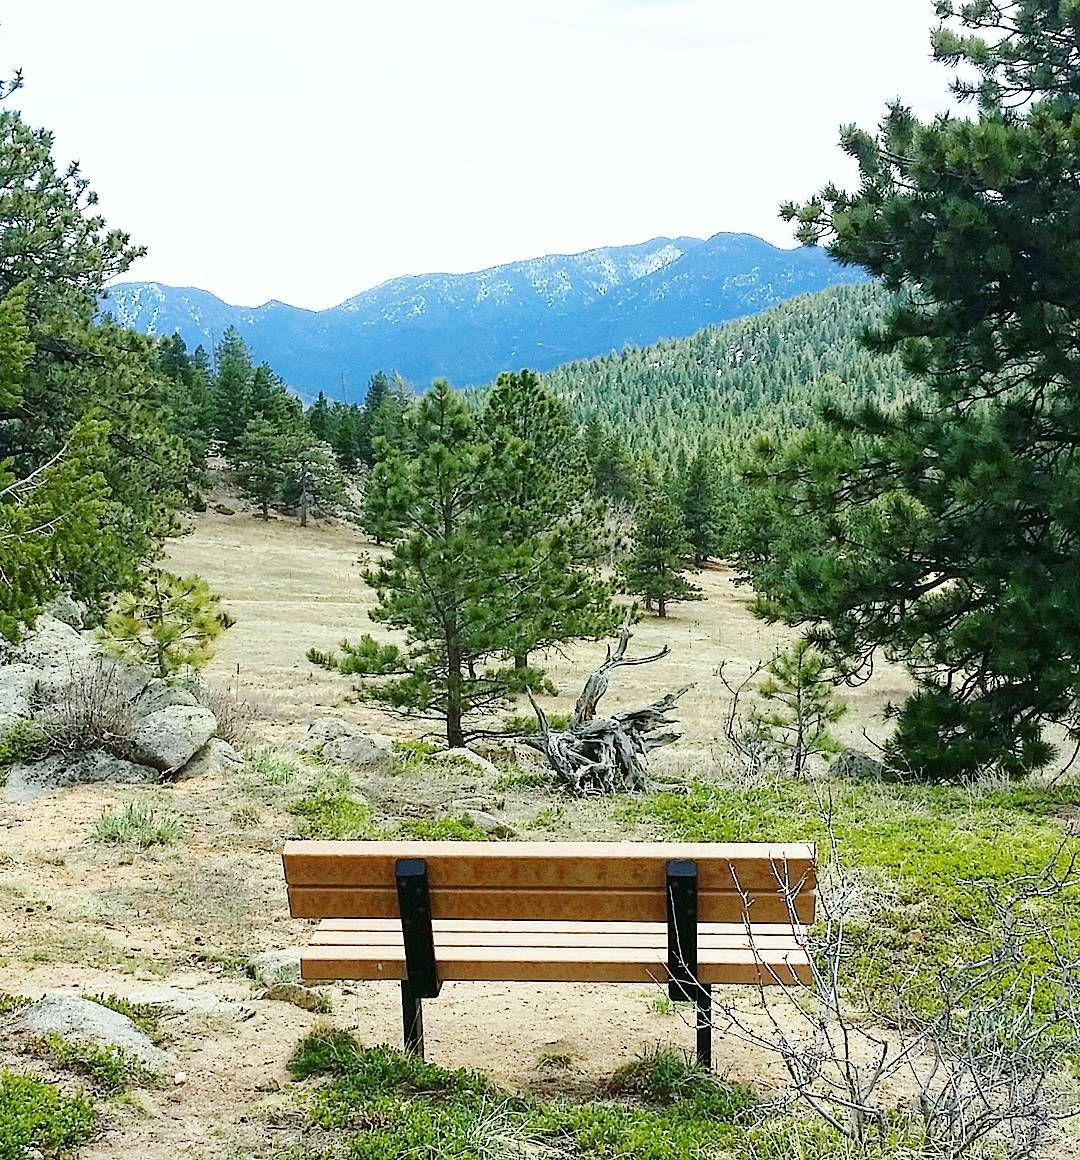 The perfect view for a bench.  The last couple of days have been beautiful in Boulder and we celebrated it by hiking to Meyers Homestead. It might be the last hike until next week because temperatures are dropping for the weekend and we might see some snow.  #boulder #visitboulder #bouldercolorado #bouldergov #colorado #visitcolorado #coloradolive #cometolife #coloradoliving #hiking #patikointi #vaellus #nature #luonto #outdoors #retkeily #retki #vuoret #mountains #travel #matka #reissu…